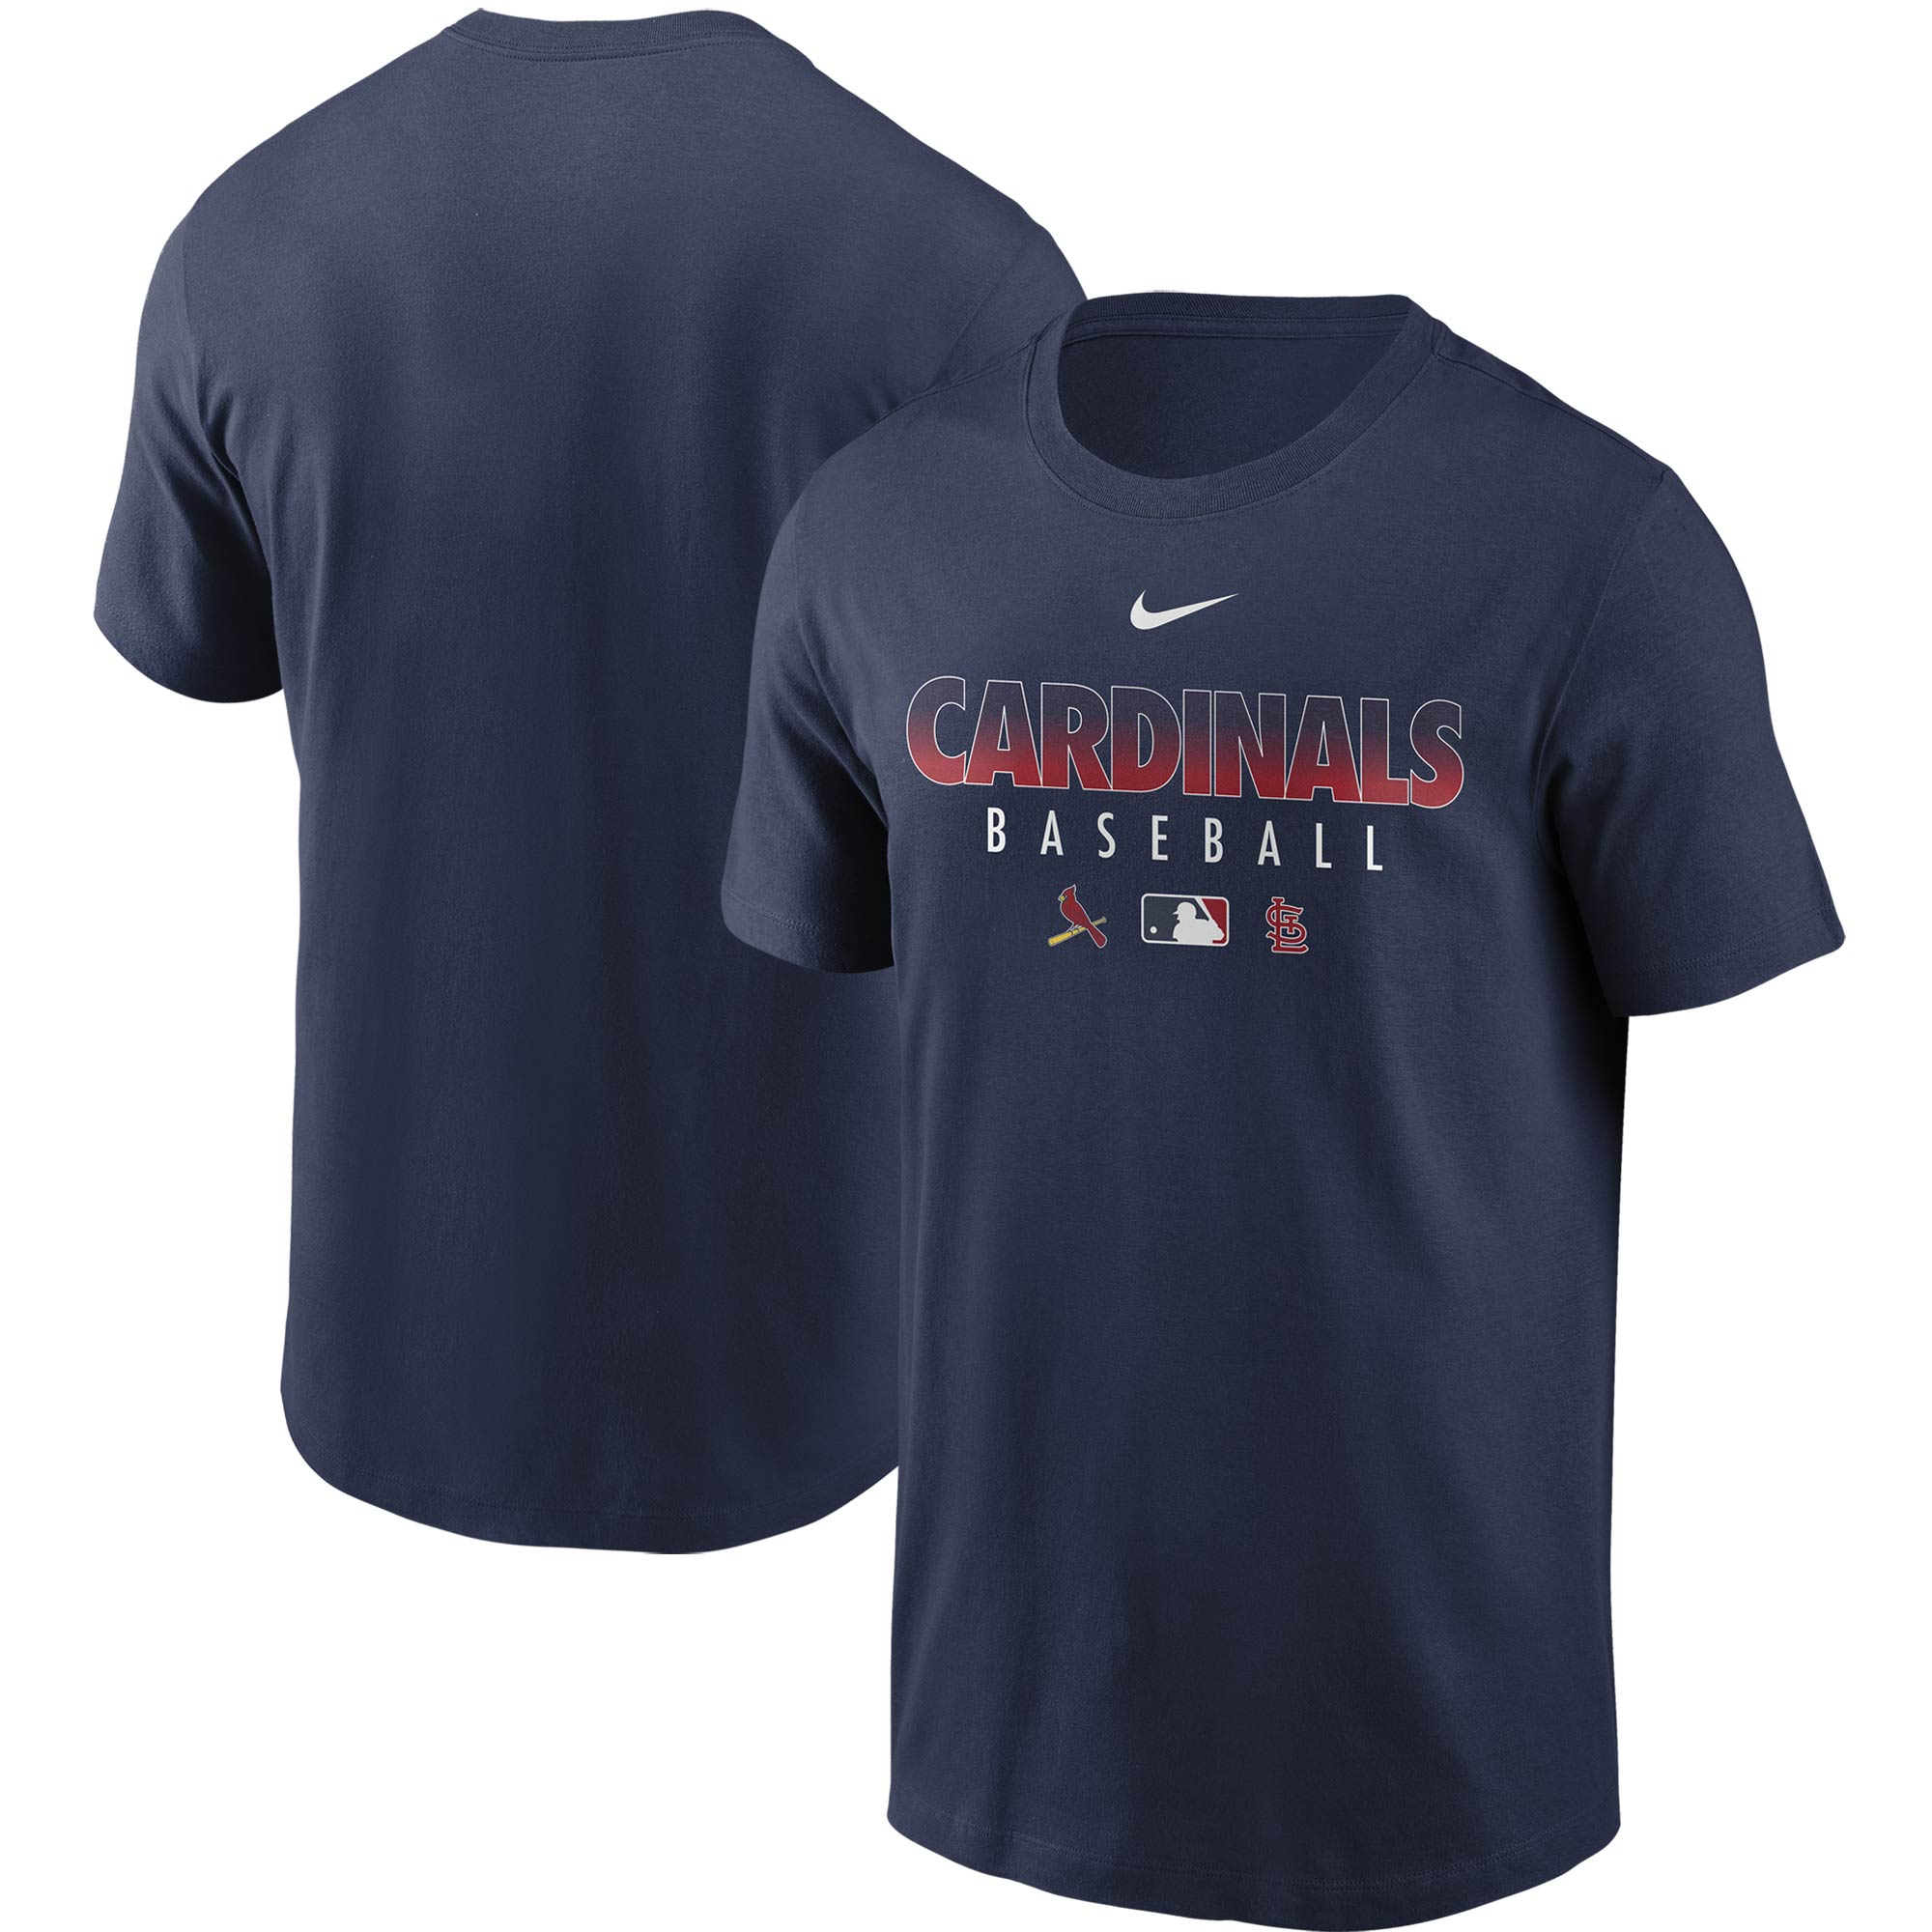 St. Louis Cardinals Nike Authentic Collection Team Performance T-Shirt - Navy